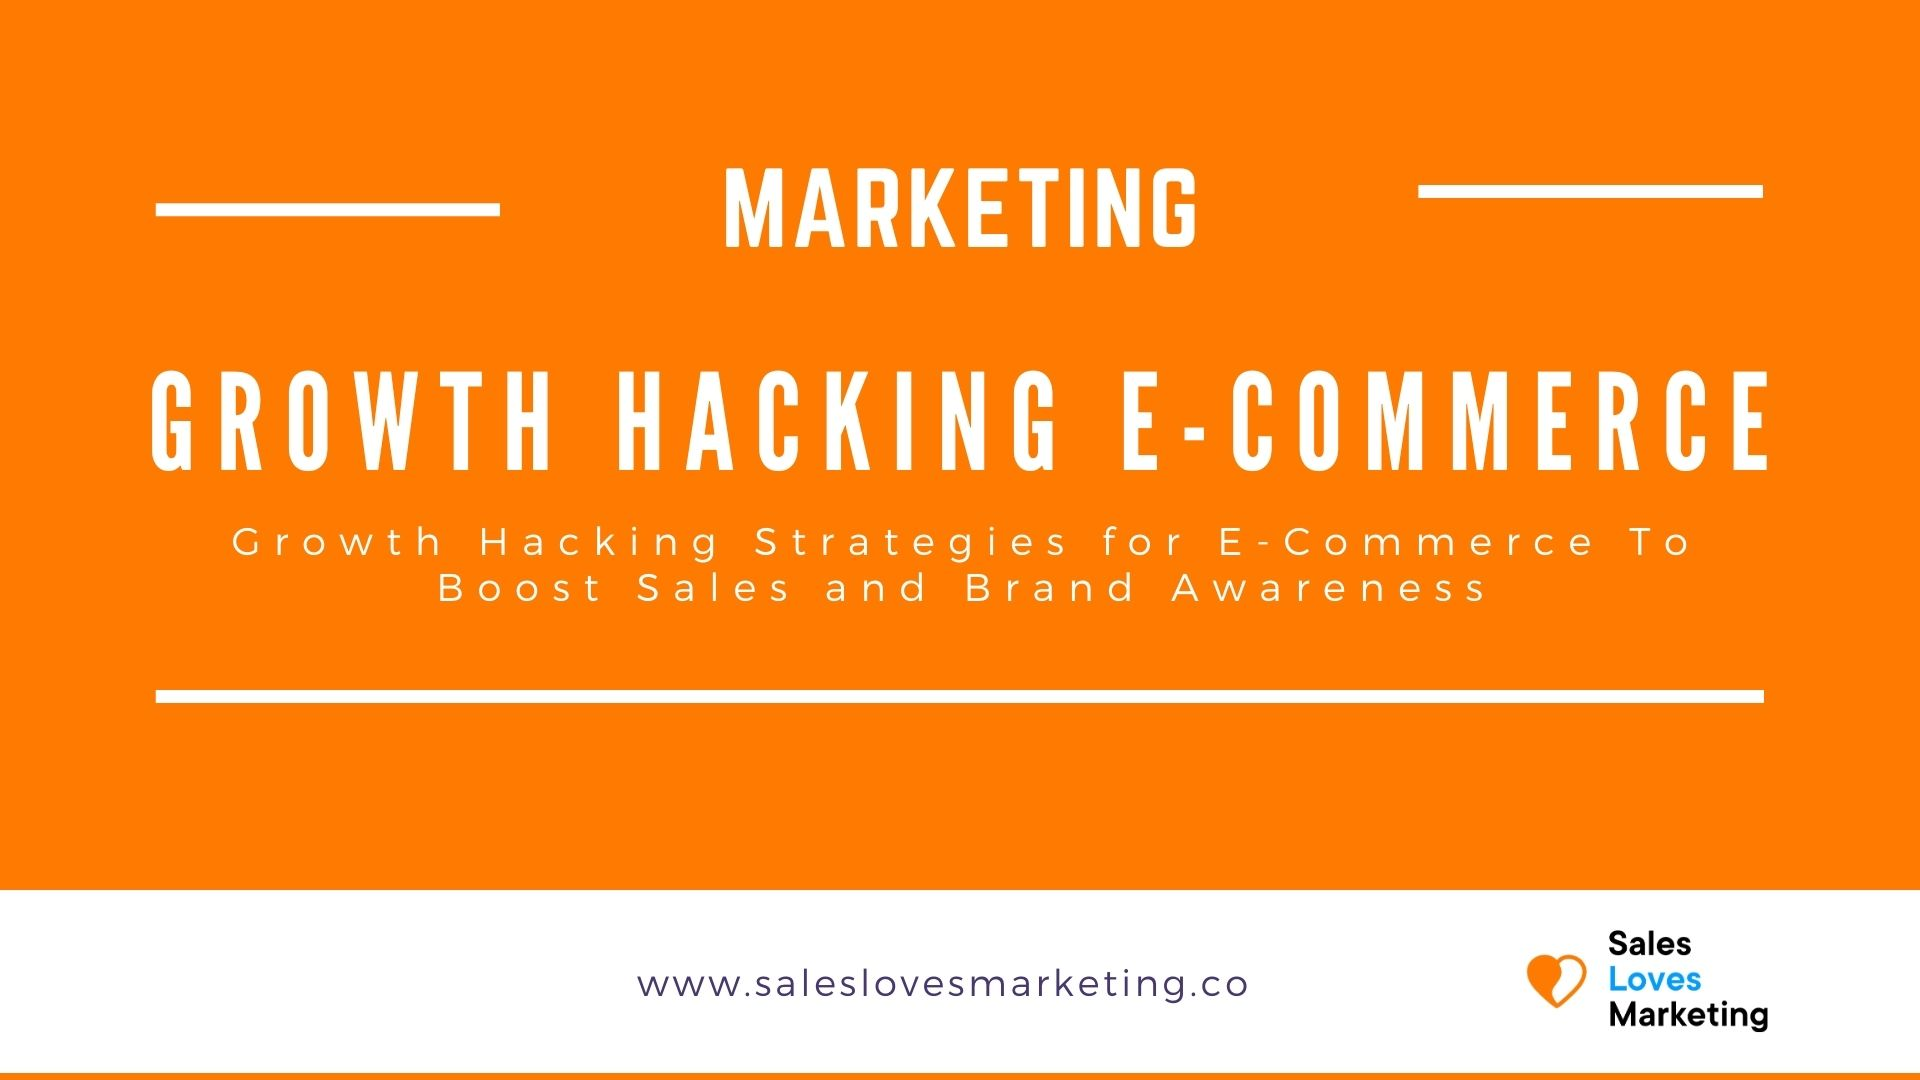 Cover for the growth hacking blog regarding e-commerce